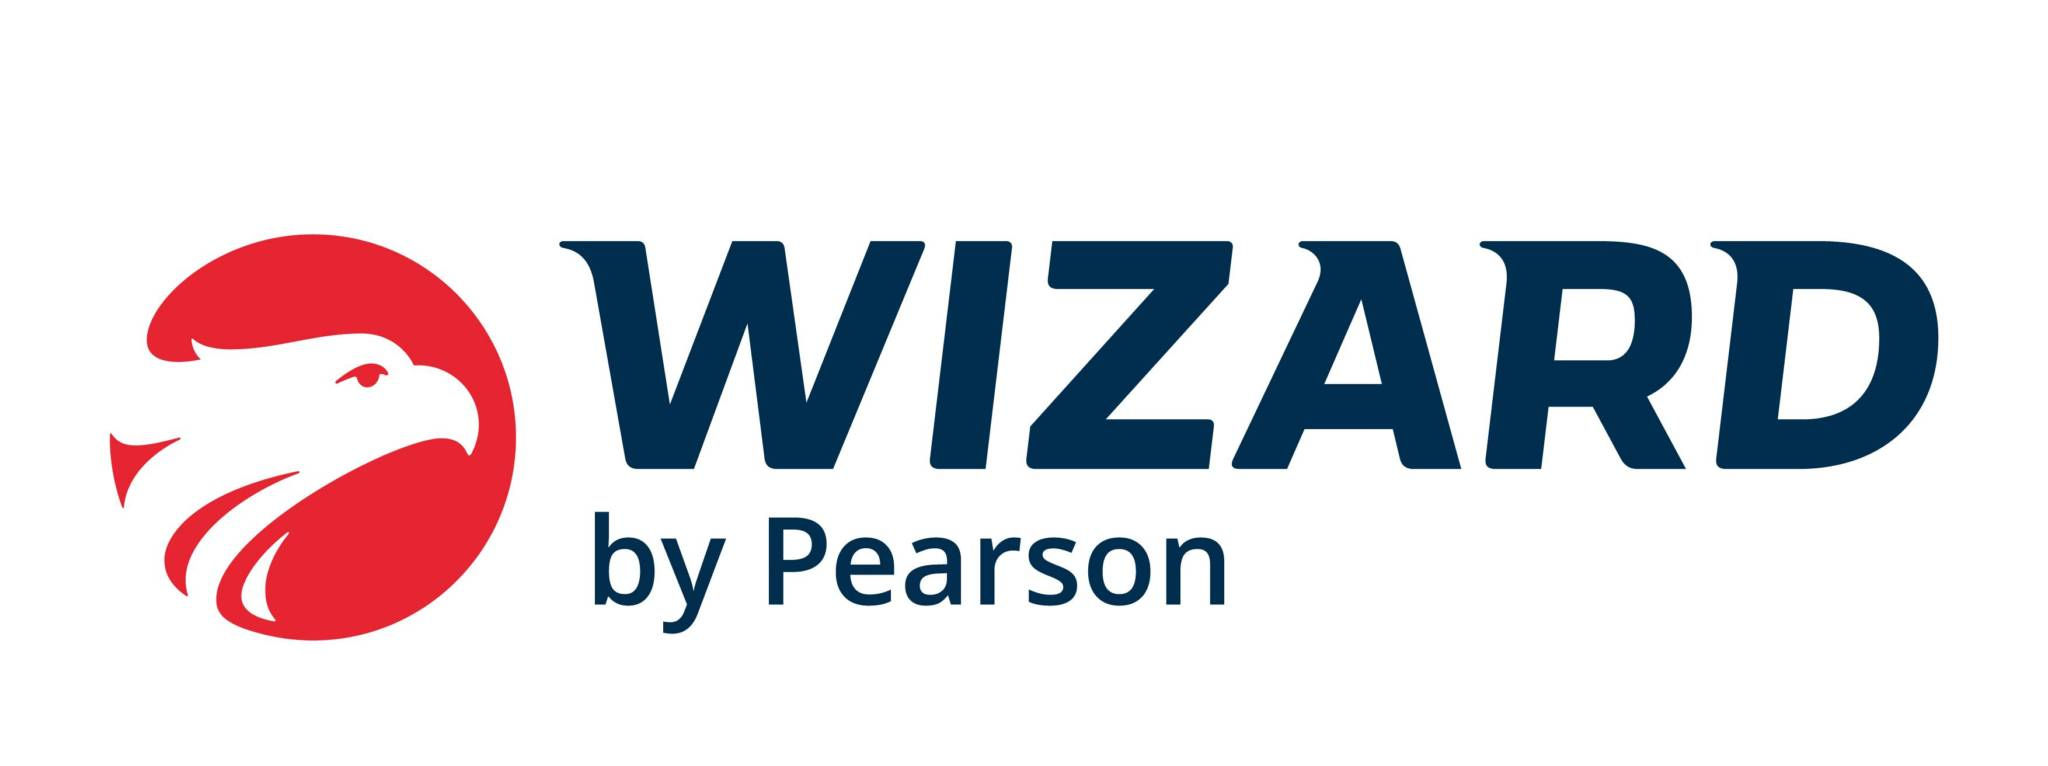 Wizard by Pearson